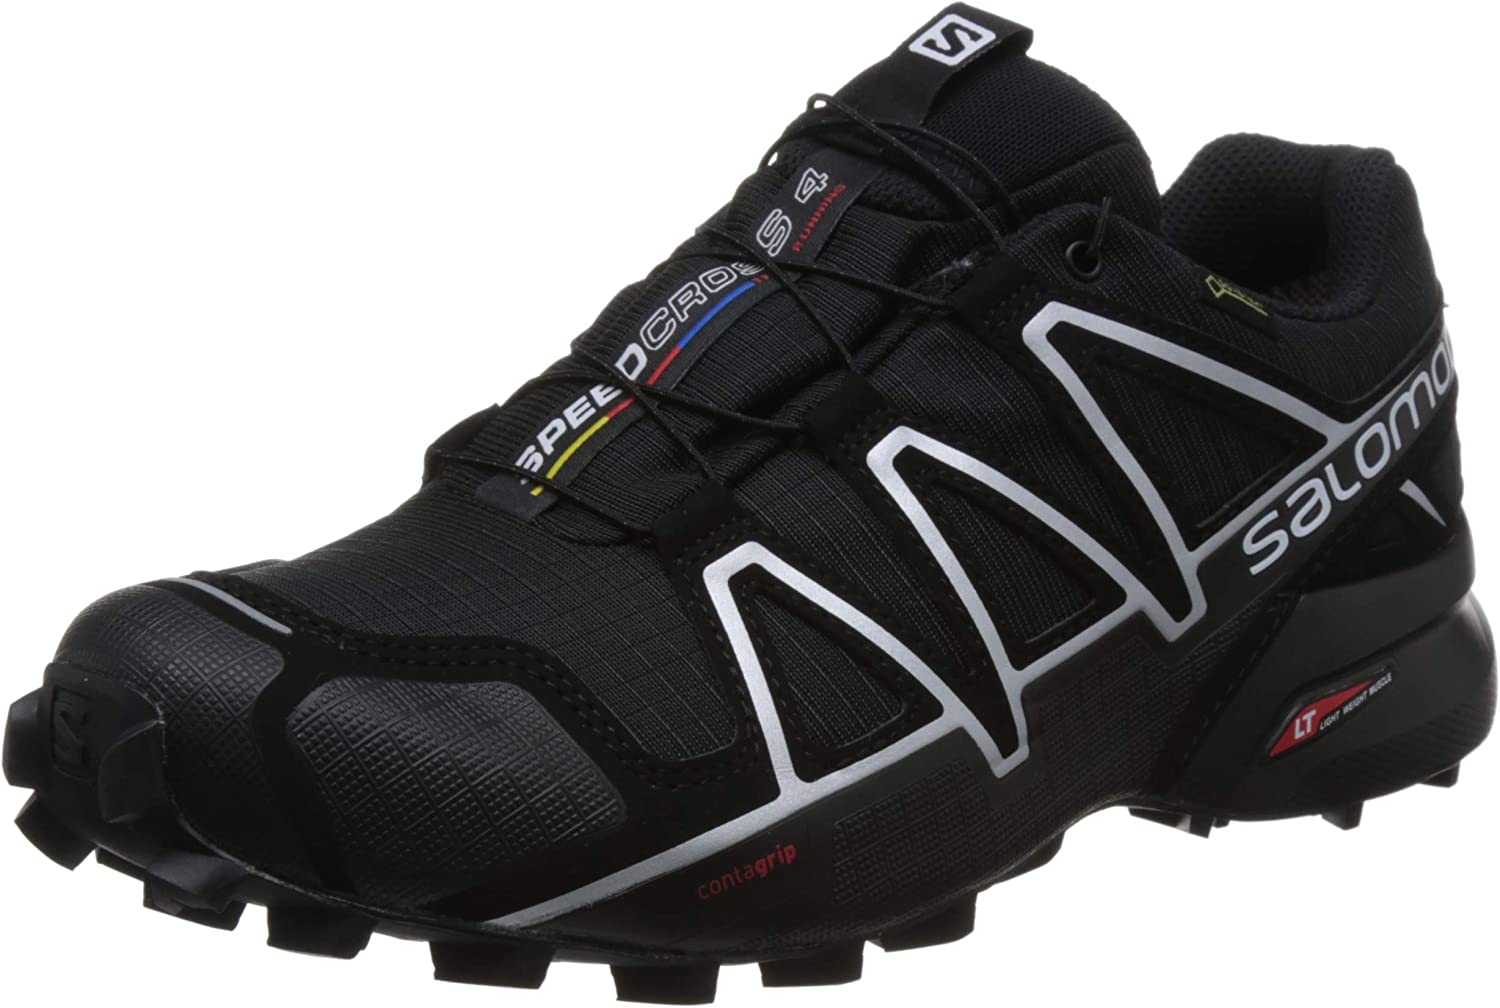 Salomon Speedcross 4 GTX, Zapatillas de Trail Running para Hombre, Negro (Black/Black/Silver Metallic-X), 40 EU: Amazon.es: Zapatos y complementos